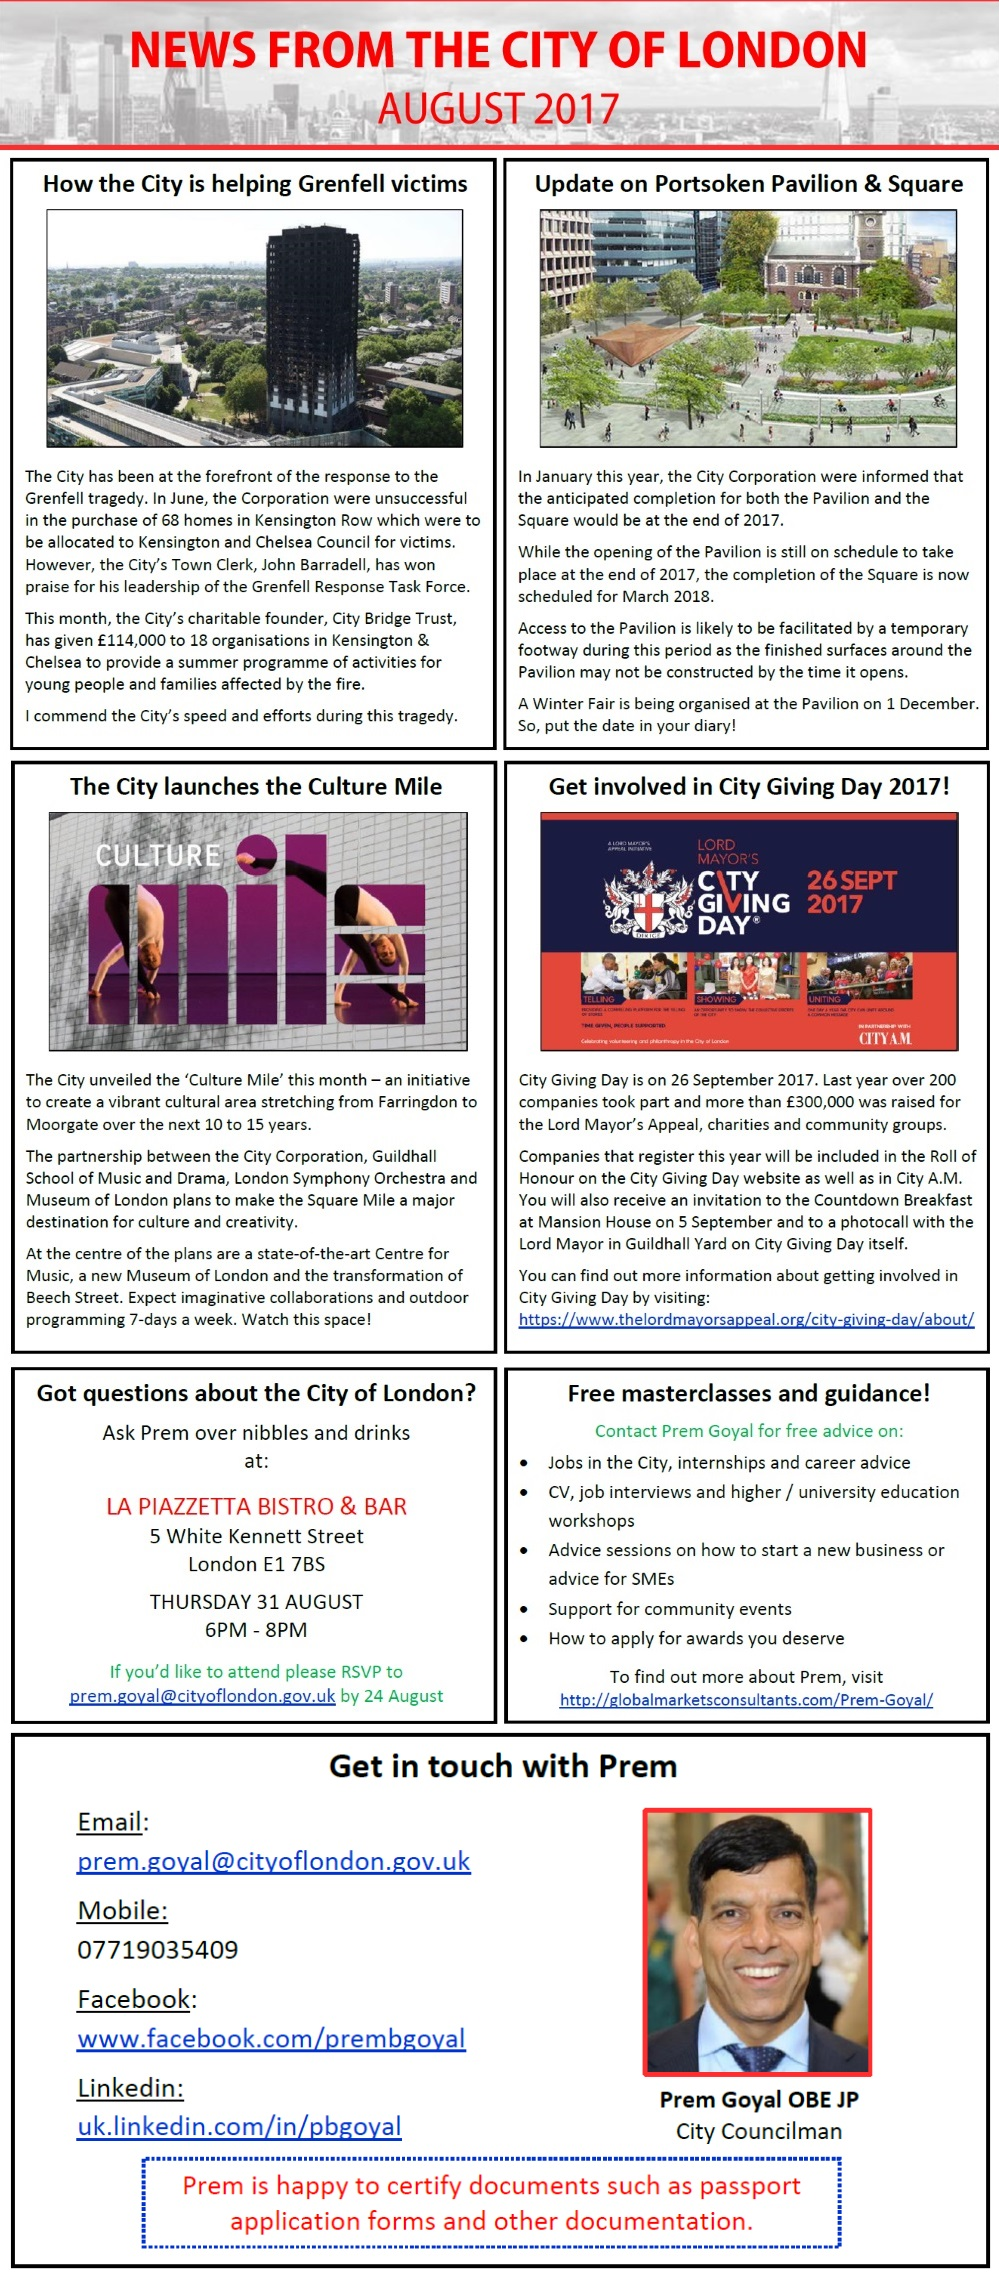 City of London News - August 2017